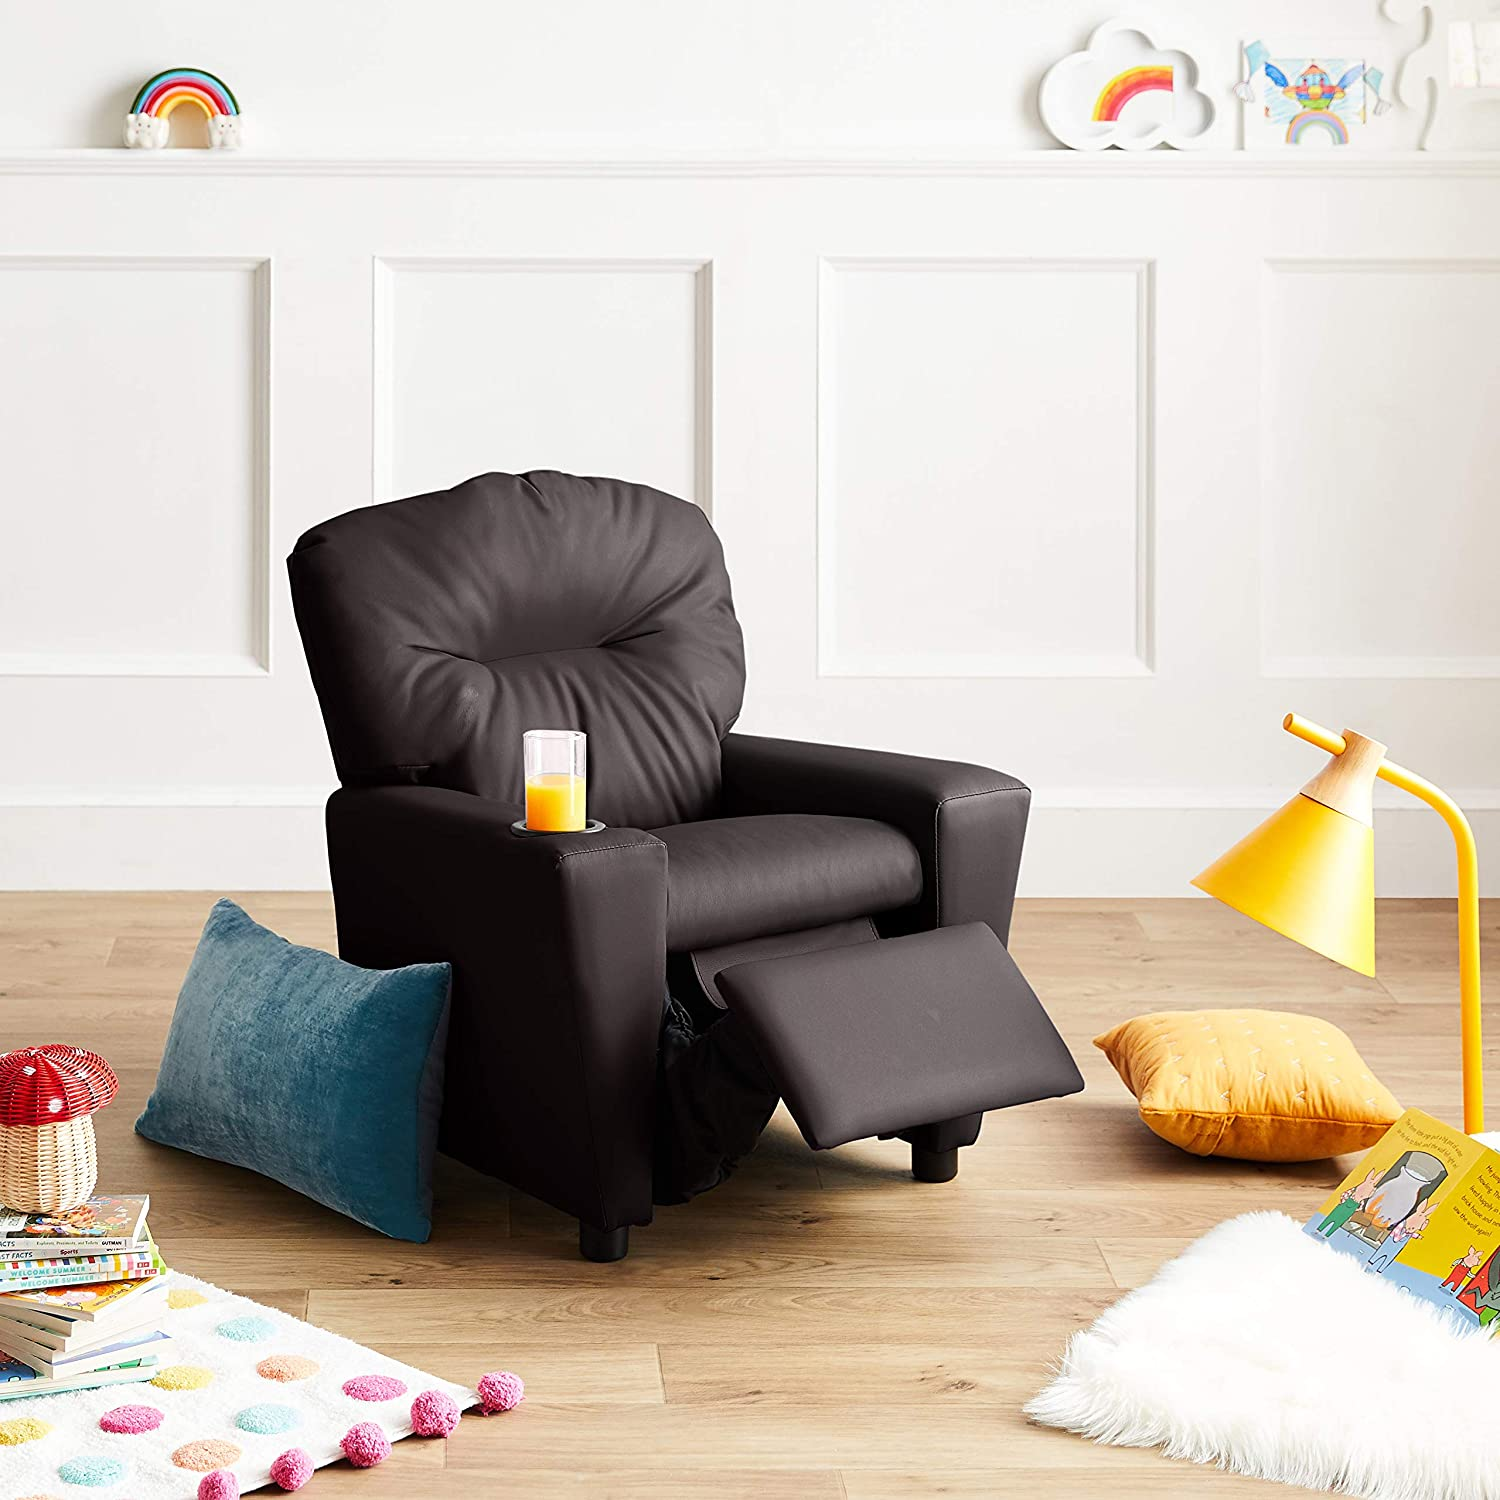 JC Home 7950-1 Contemporary Brown Leather Kids Recliner with Cup Holder